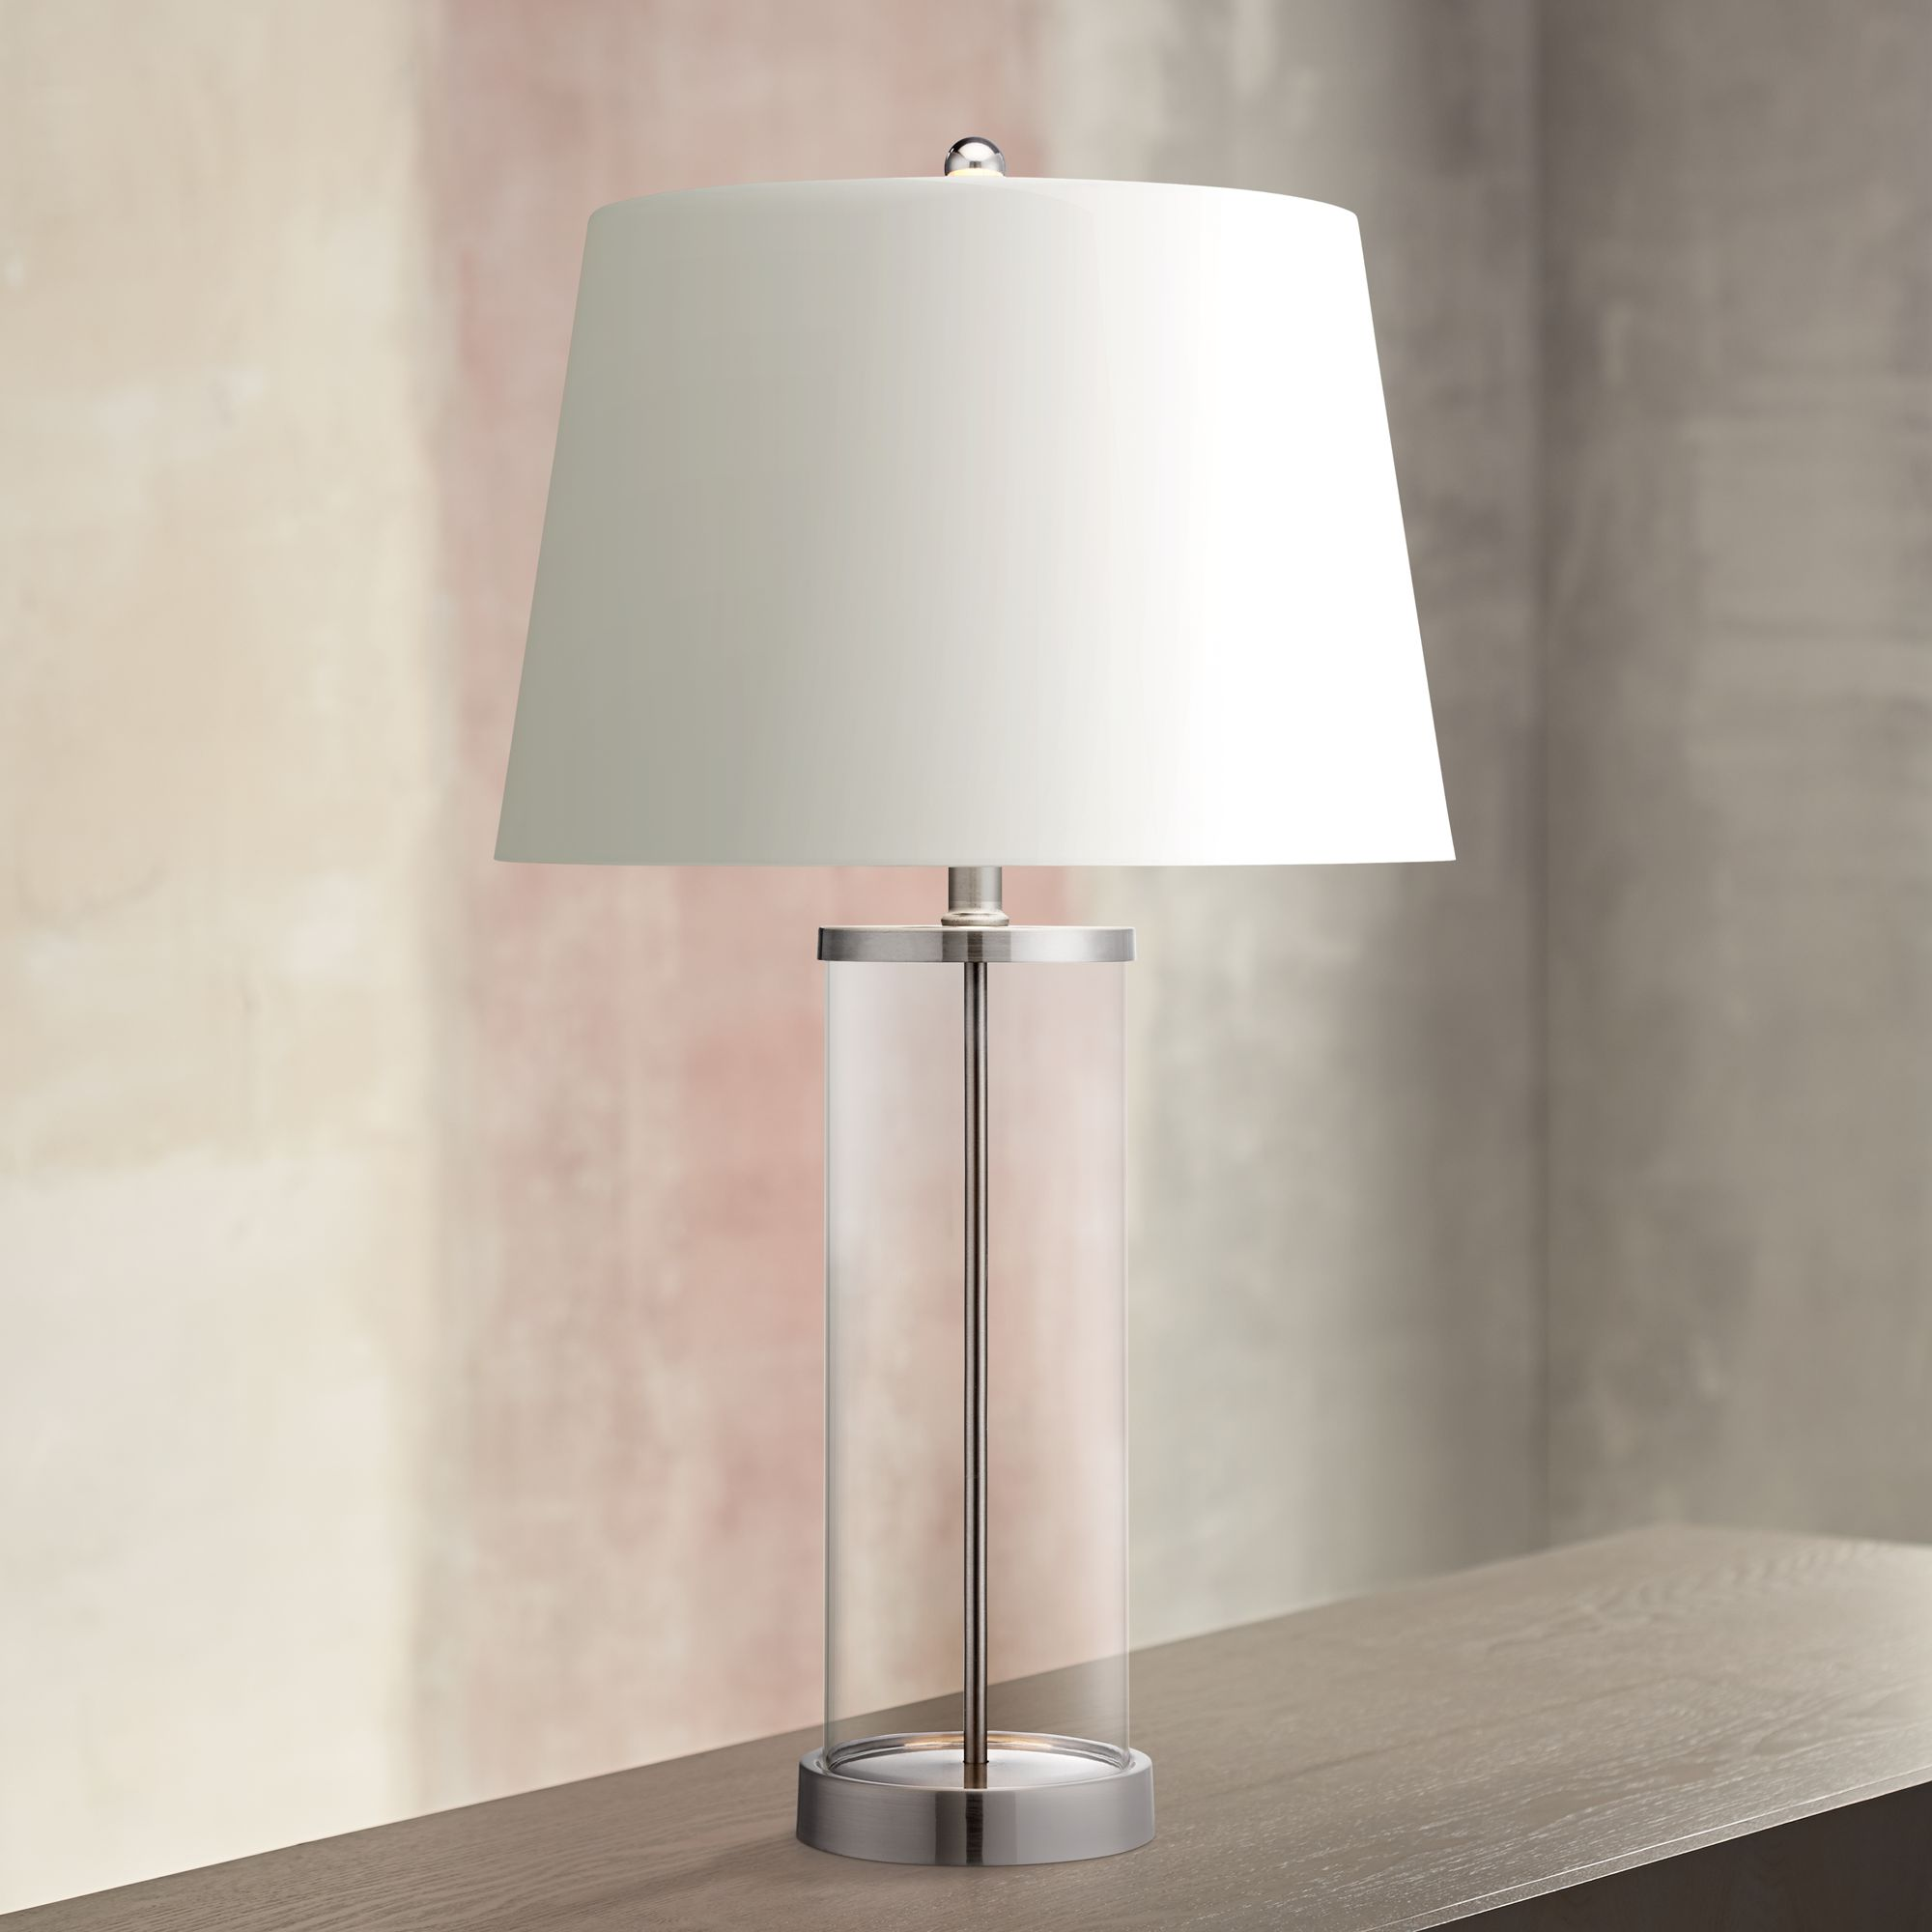 Charmant Glass And Steel Cylinder Fillable Table Lamp